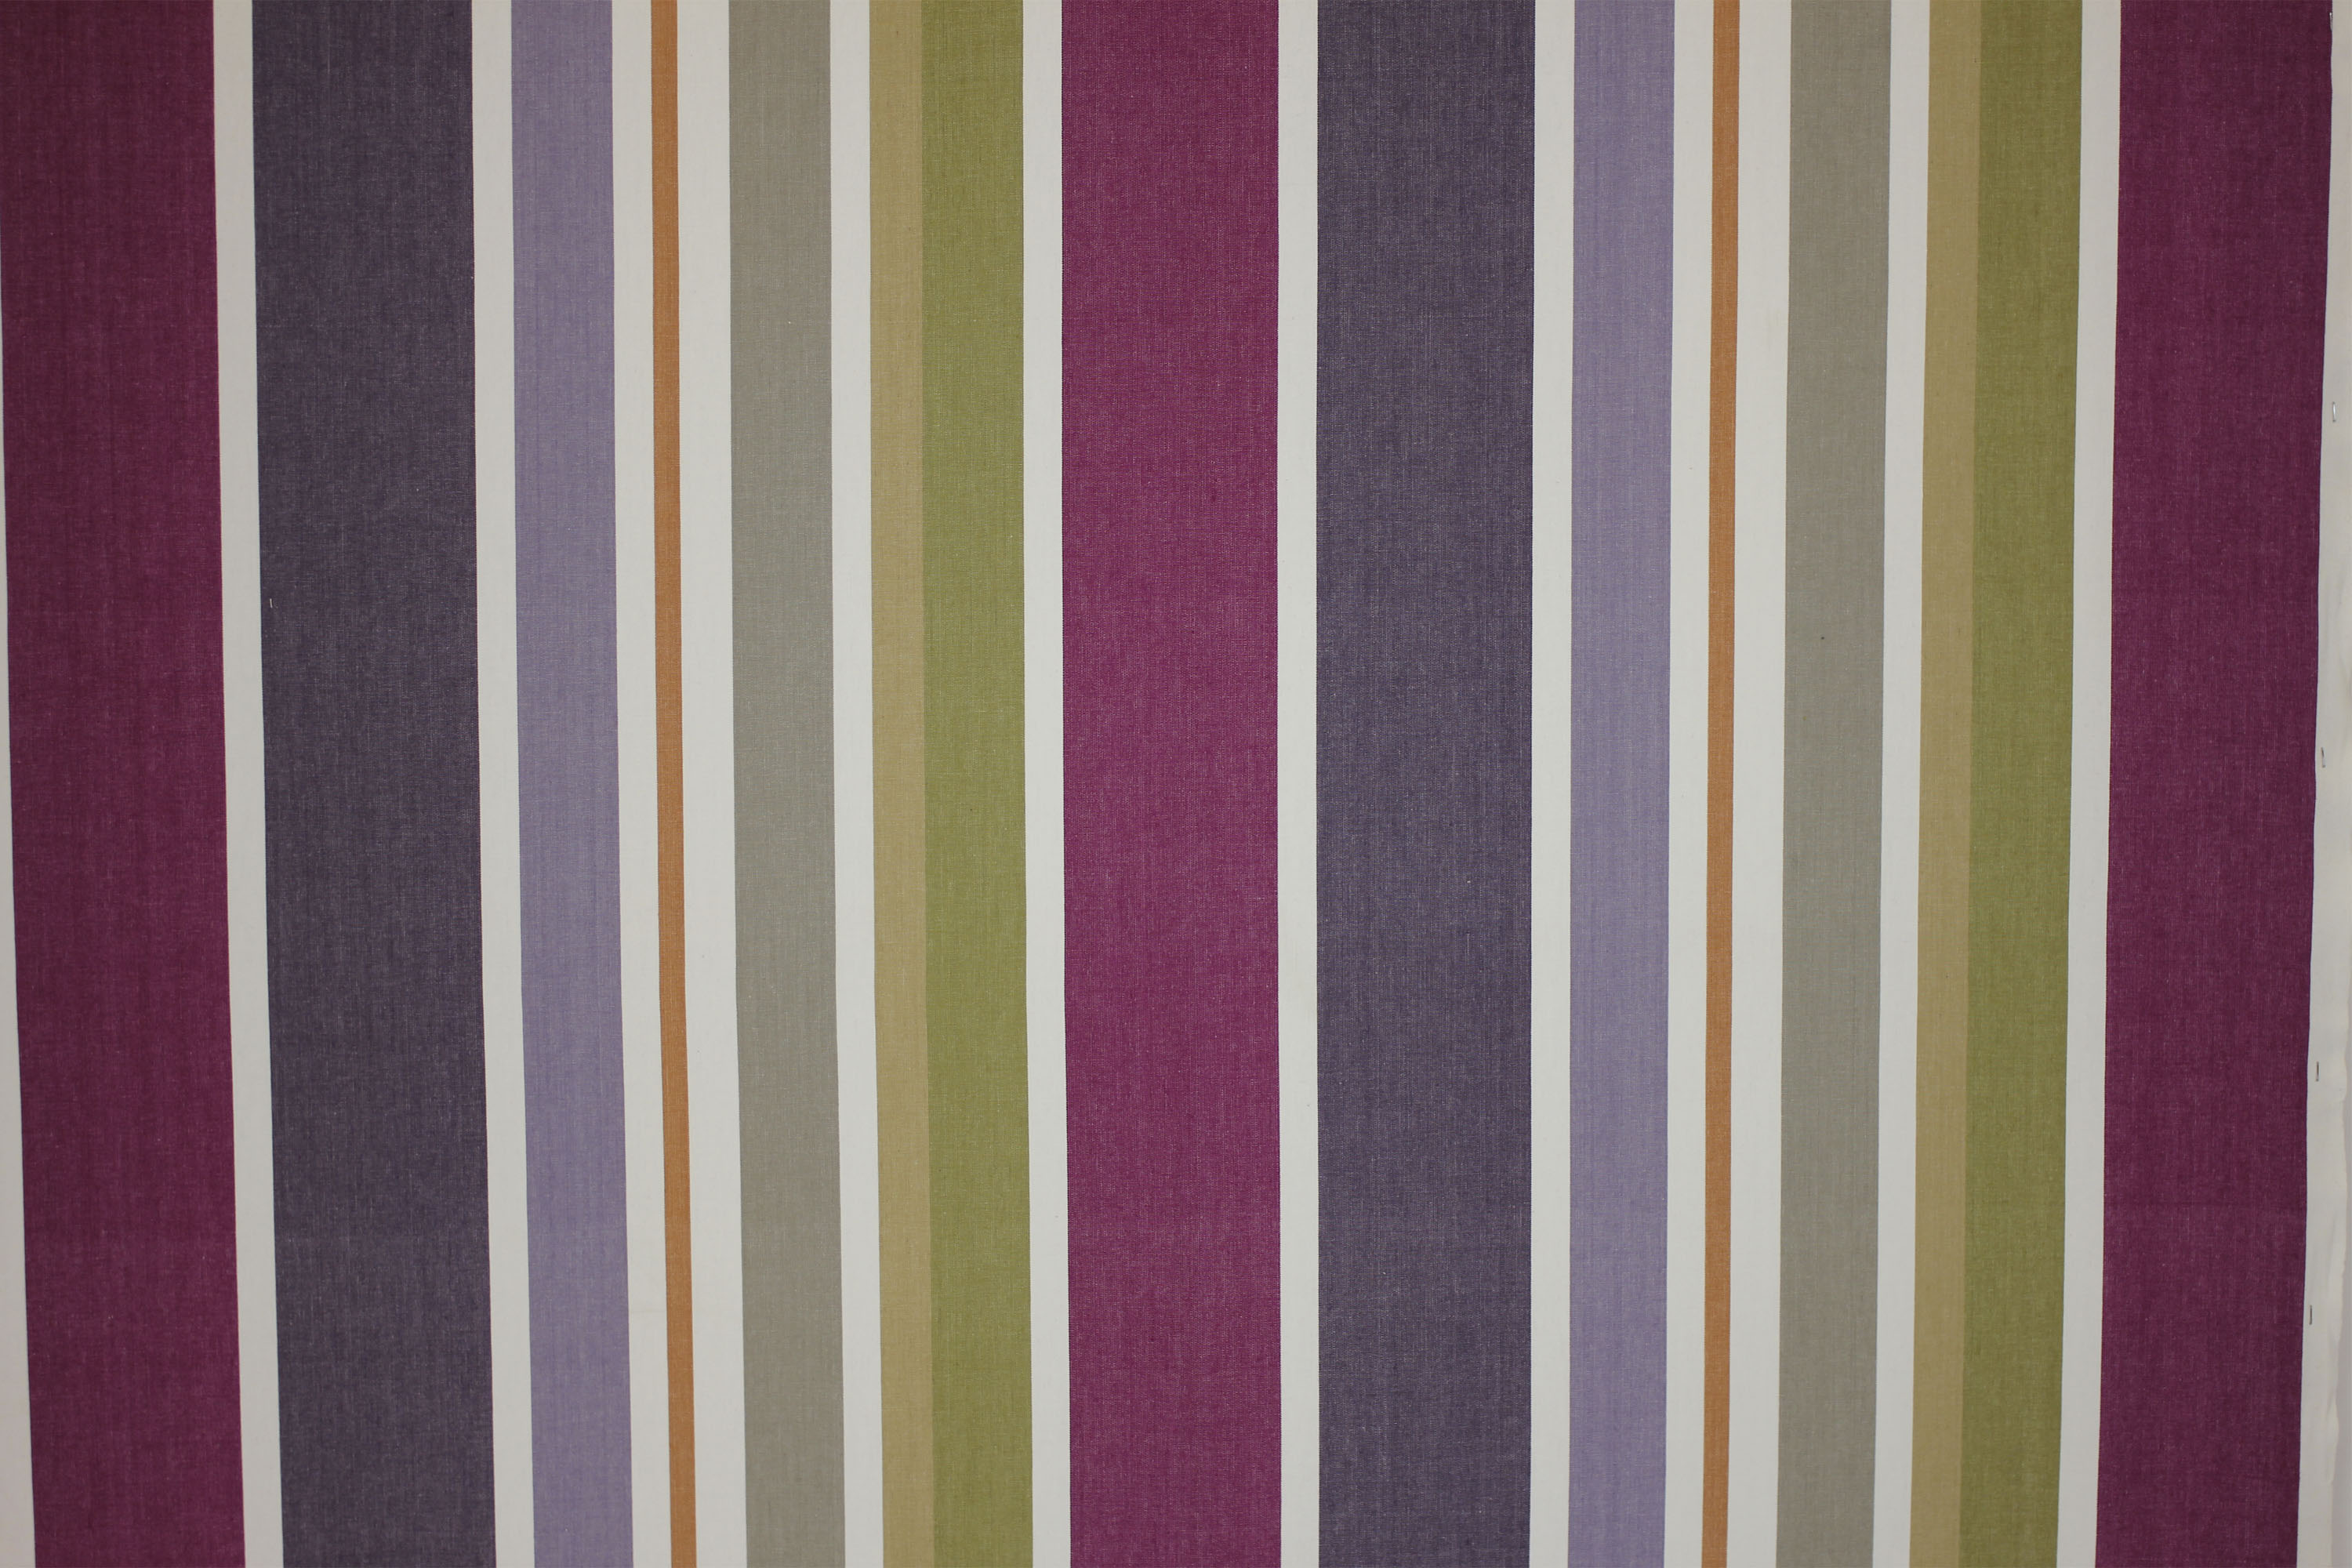 Wipe Clean Fabrics | Water Repellent Fabrics | Striped Coated Fabrics purple, lilac, mauve